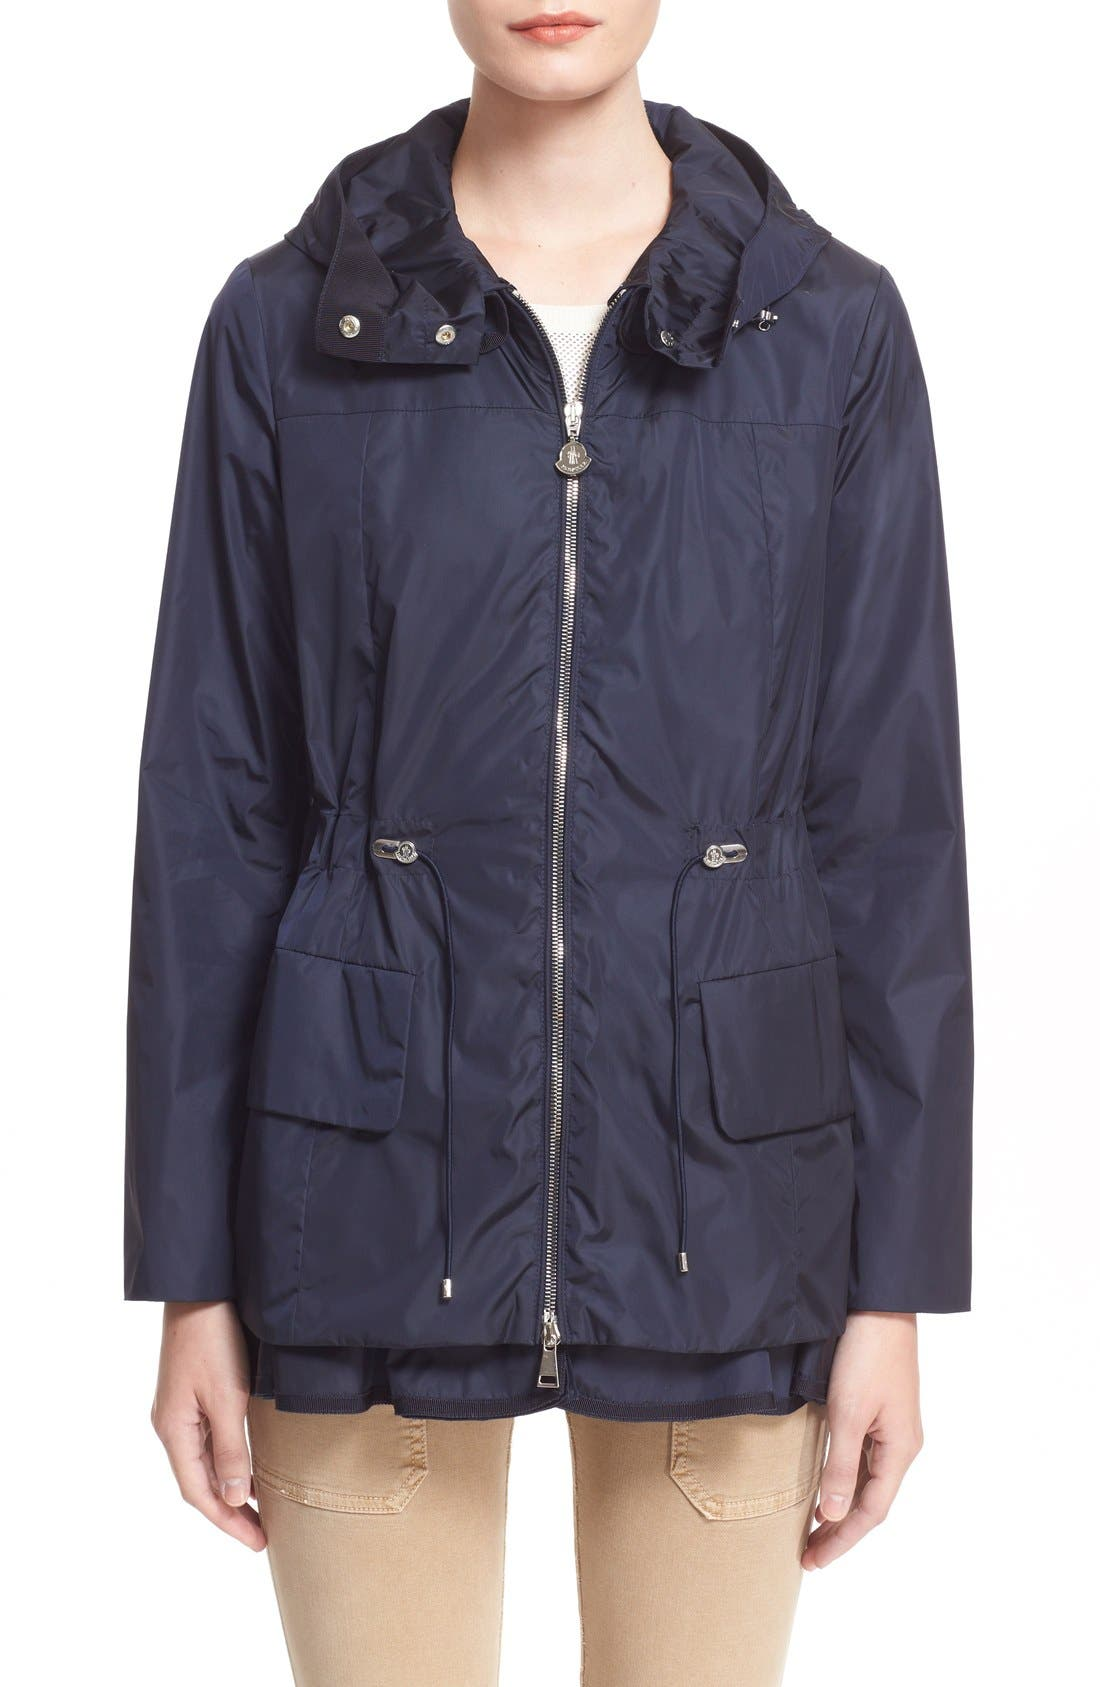 Alternate Image 1 Selected - Moncler 'Limbert' Water Resistant Peplum Hem Hooded Rain Jacket